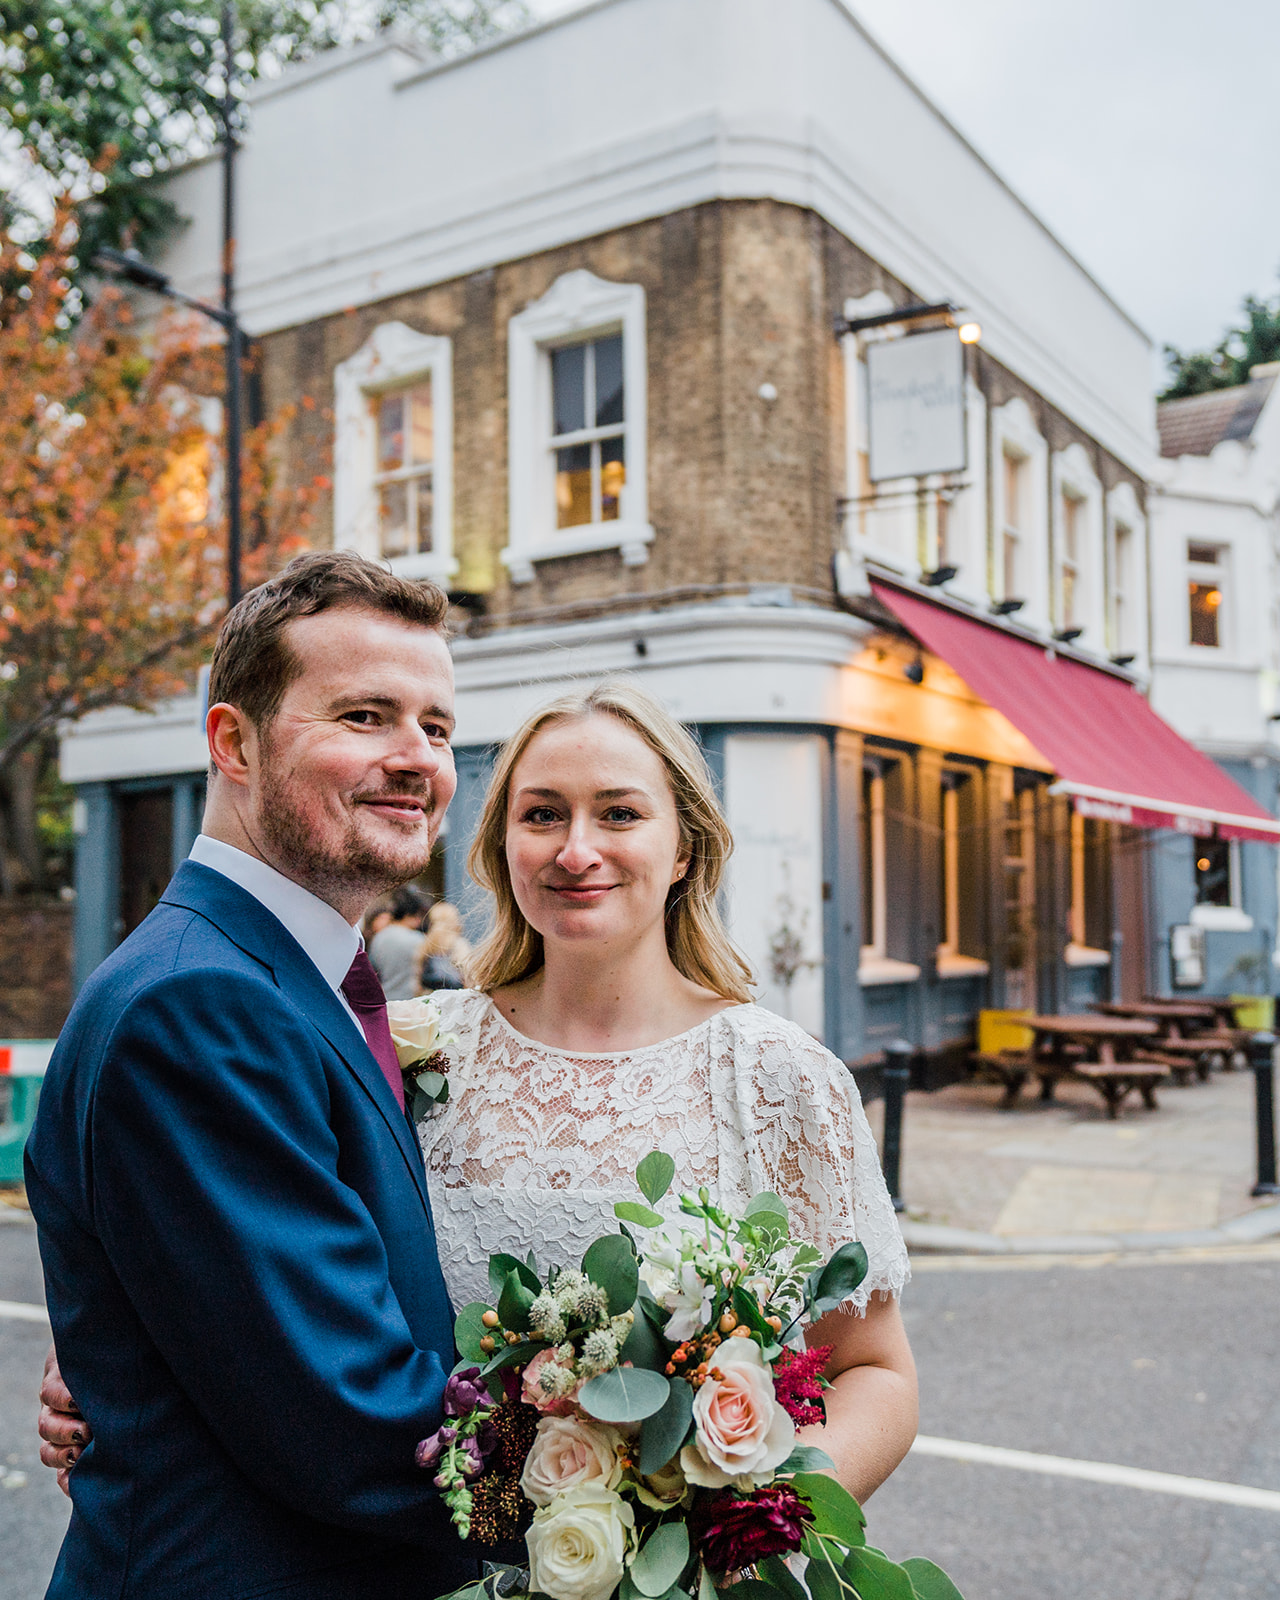 Bride and groom standing outside the Crooked Well Pub in South London | South London Pub Wedding | Photo by Parrot and Pineapple